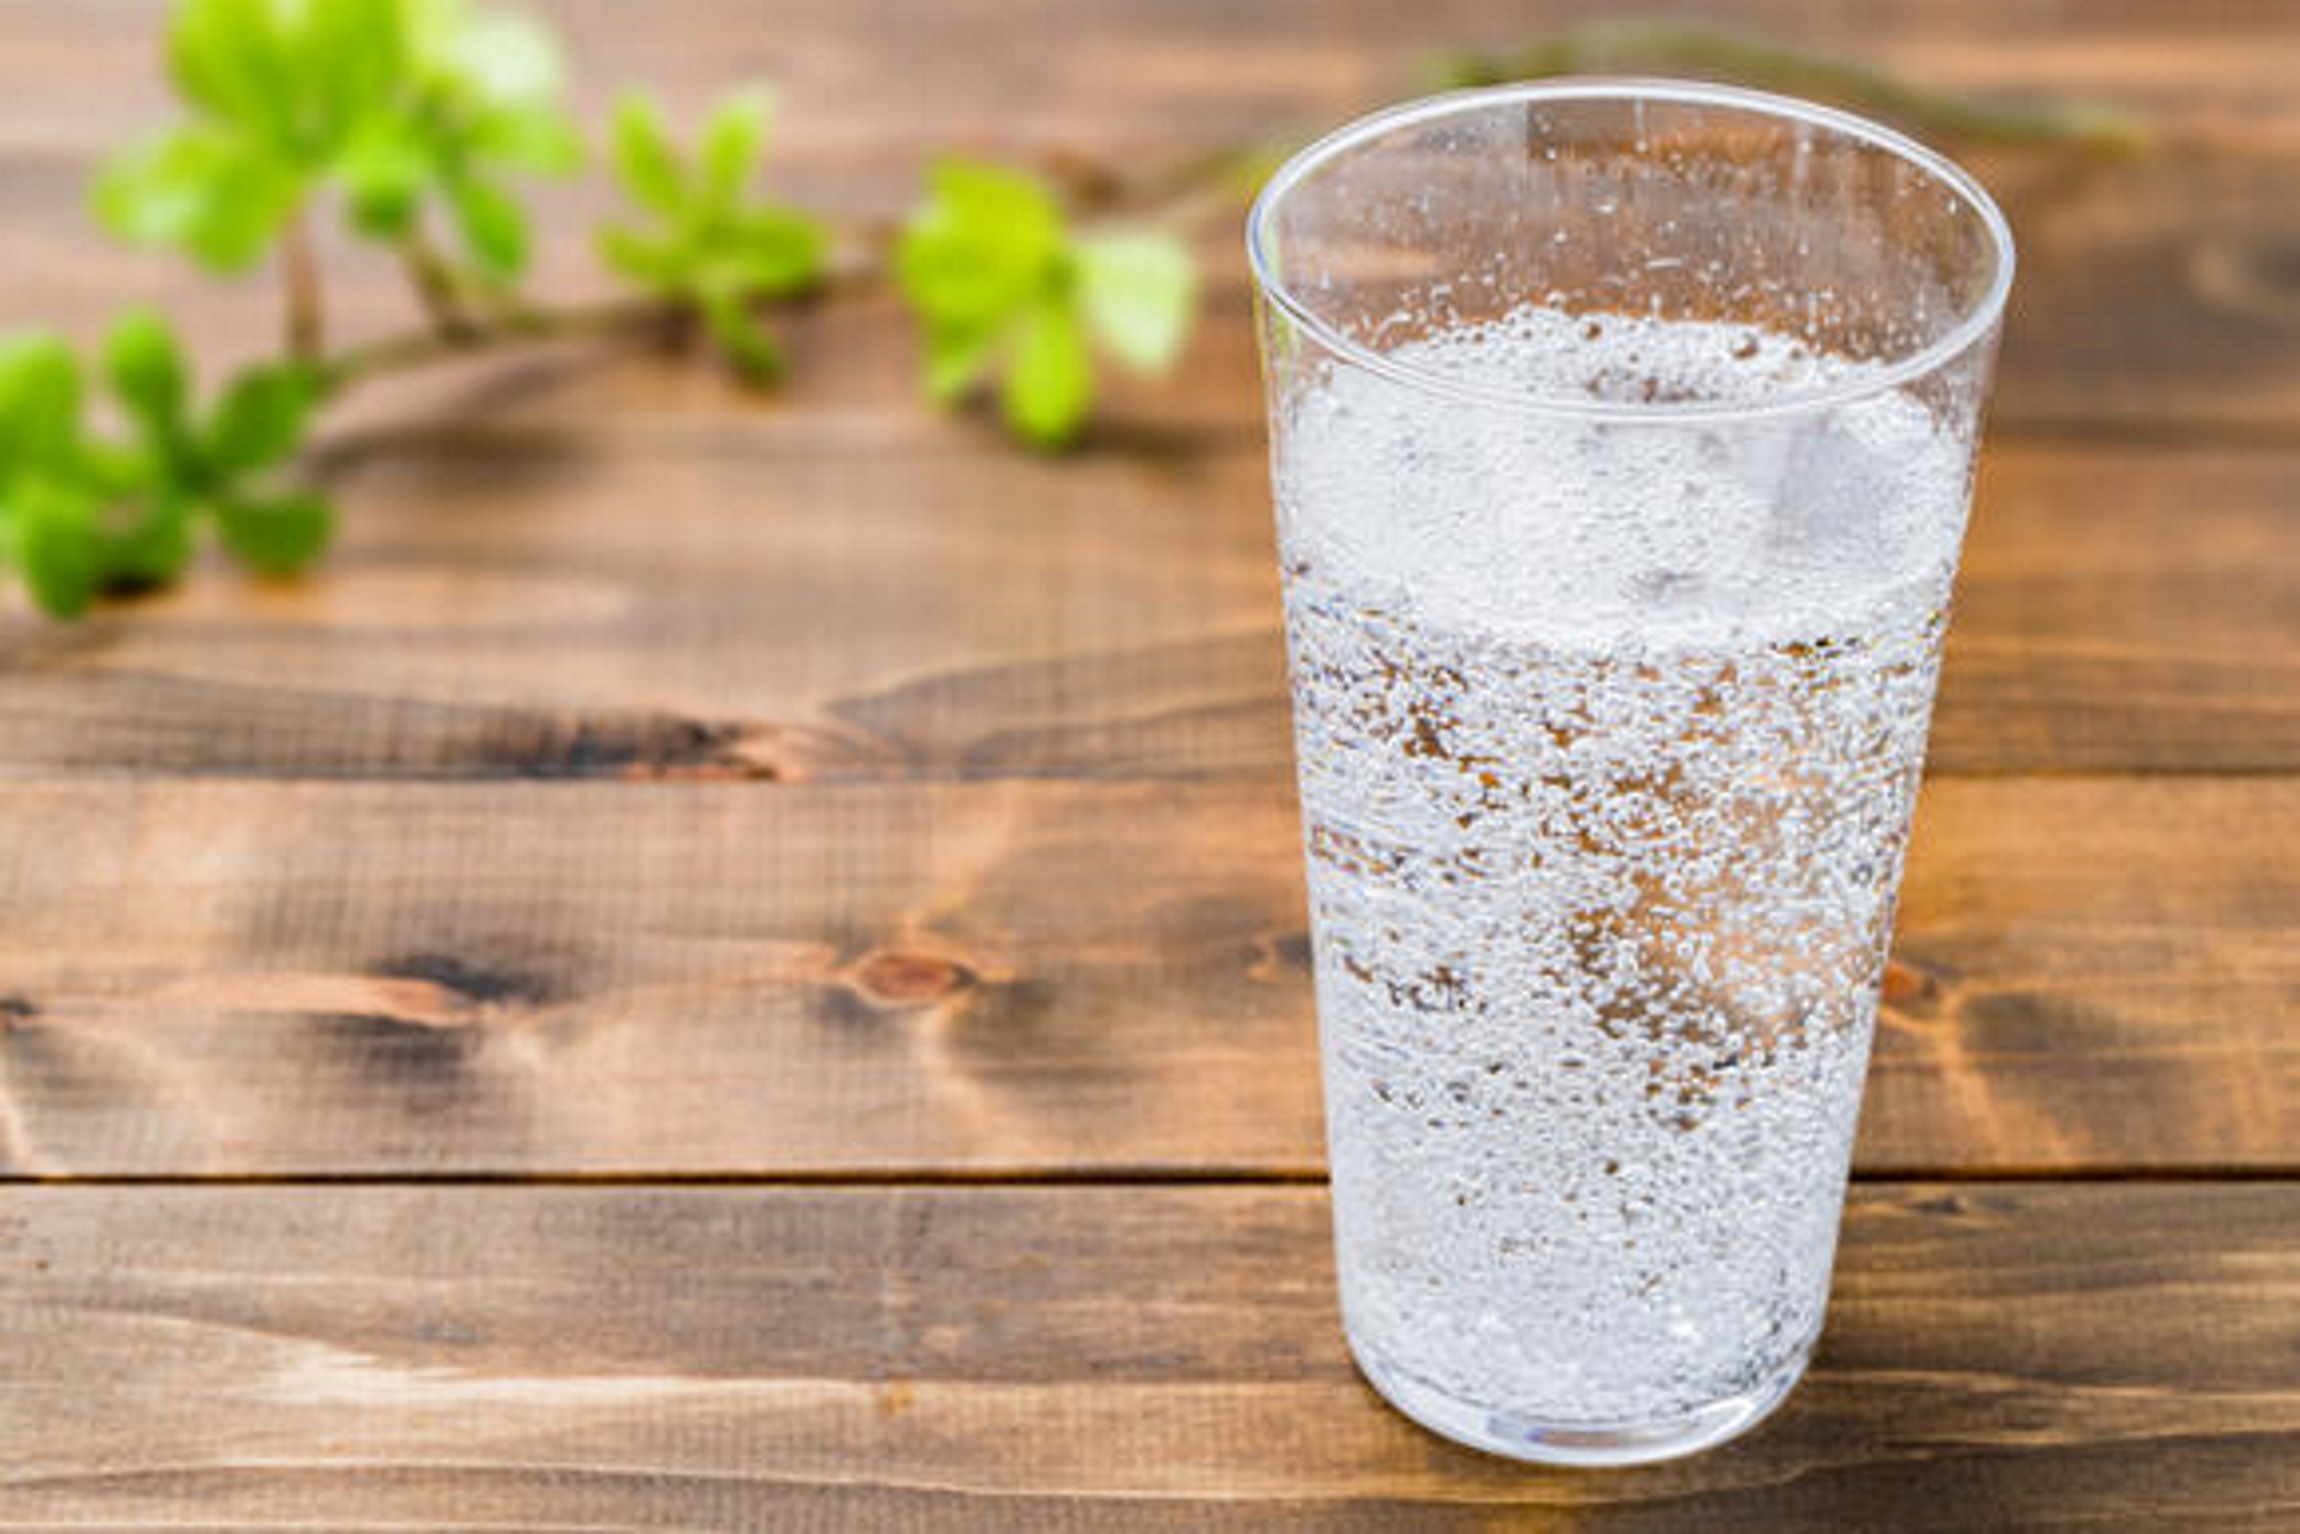 What is the difference between club soda, tonic water, seltzer water, carbonated water, mineral water, and sparkling water